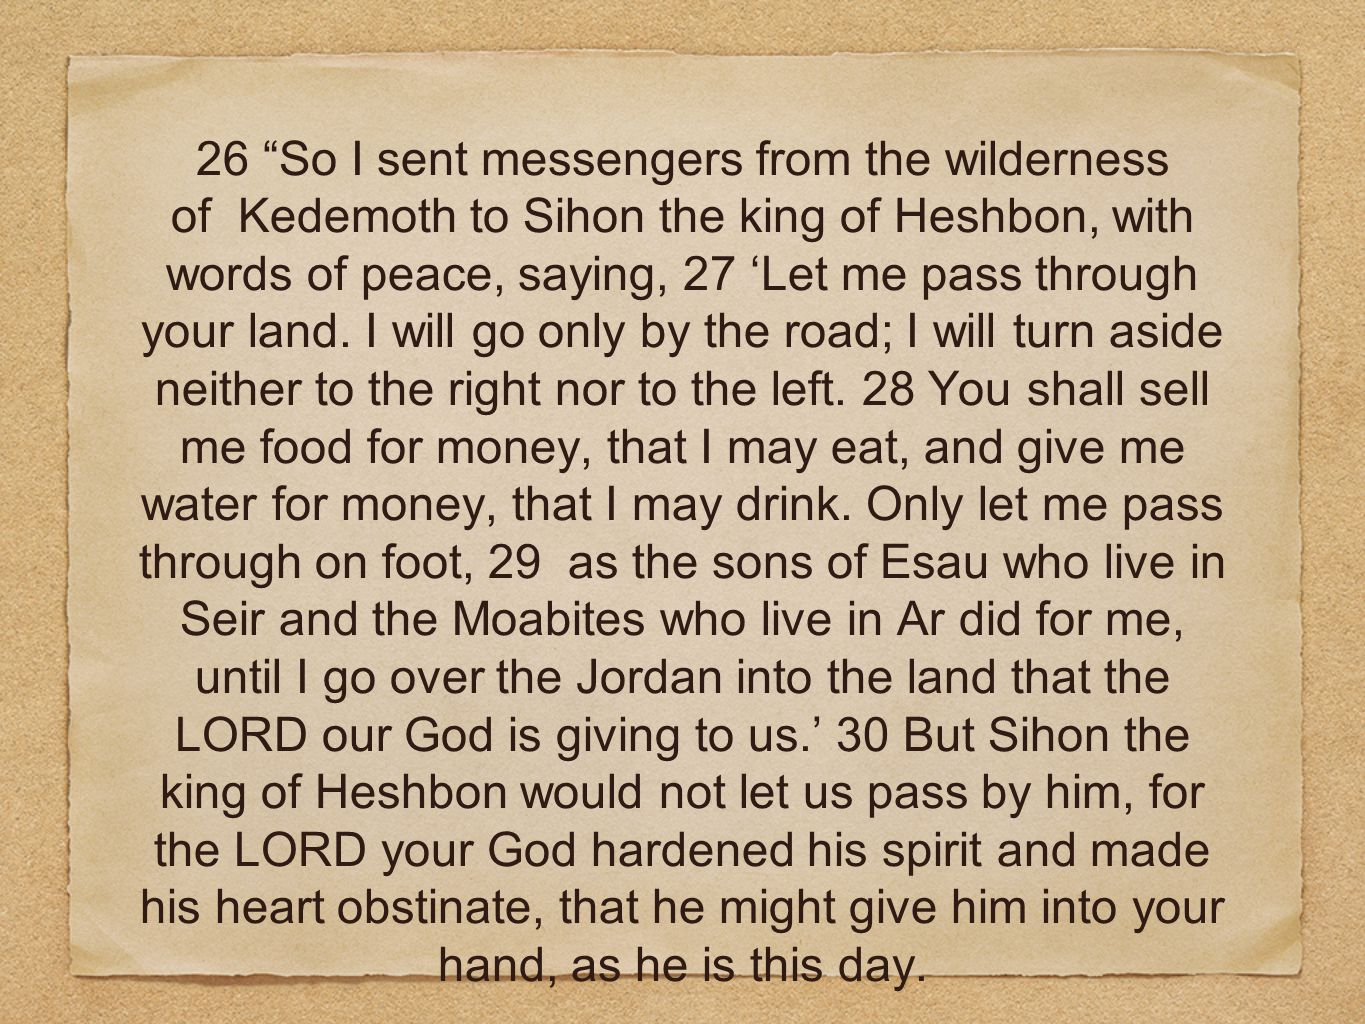 26 So I sent messengers from the wilderness of Kedemoth to Sihon the king of Heshbon, with words of peace, saying, 27 'Let me pass through your land.